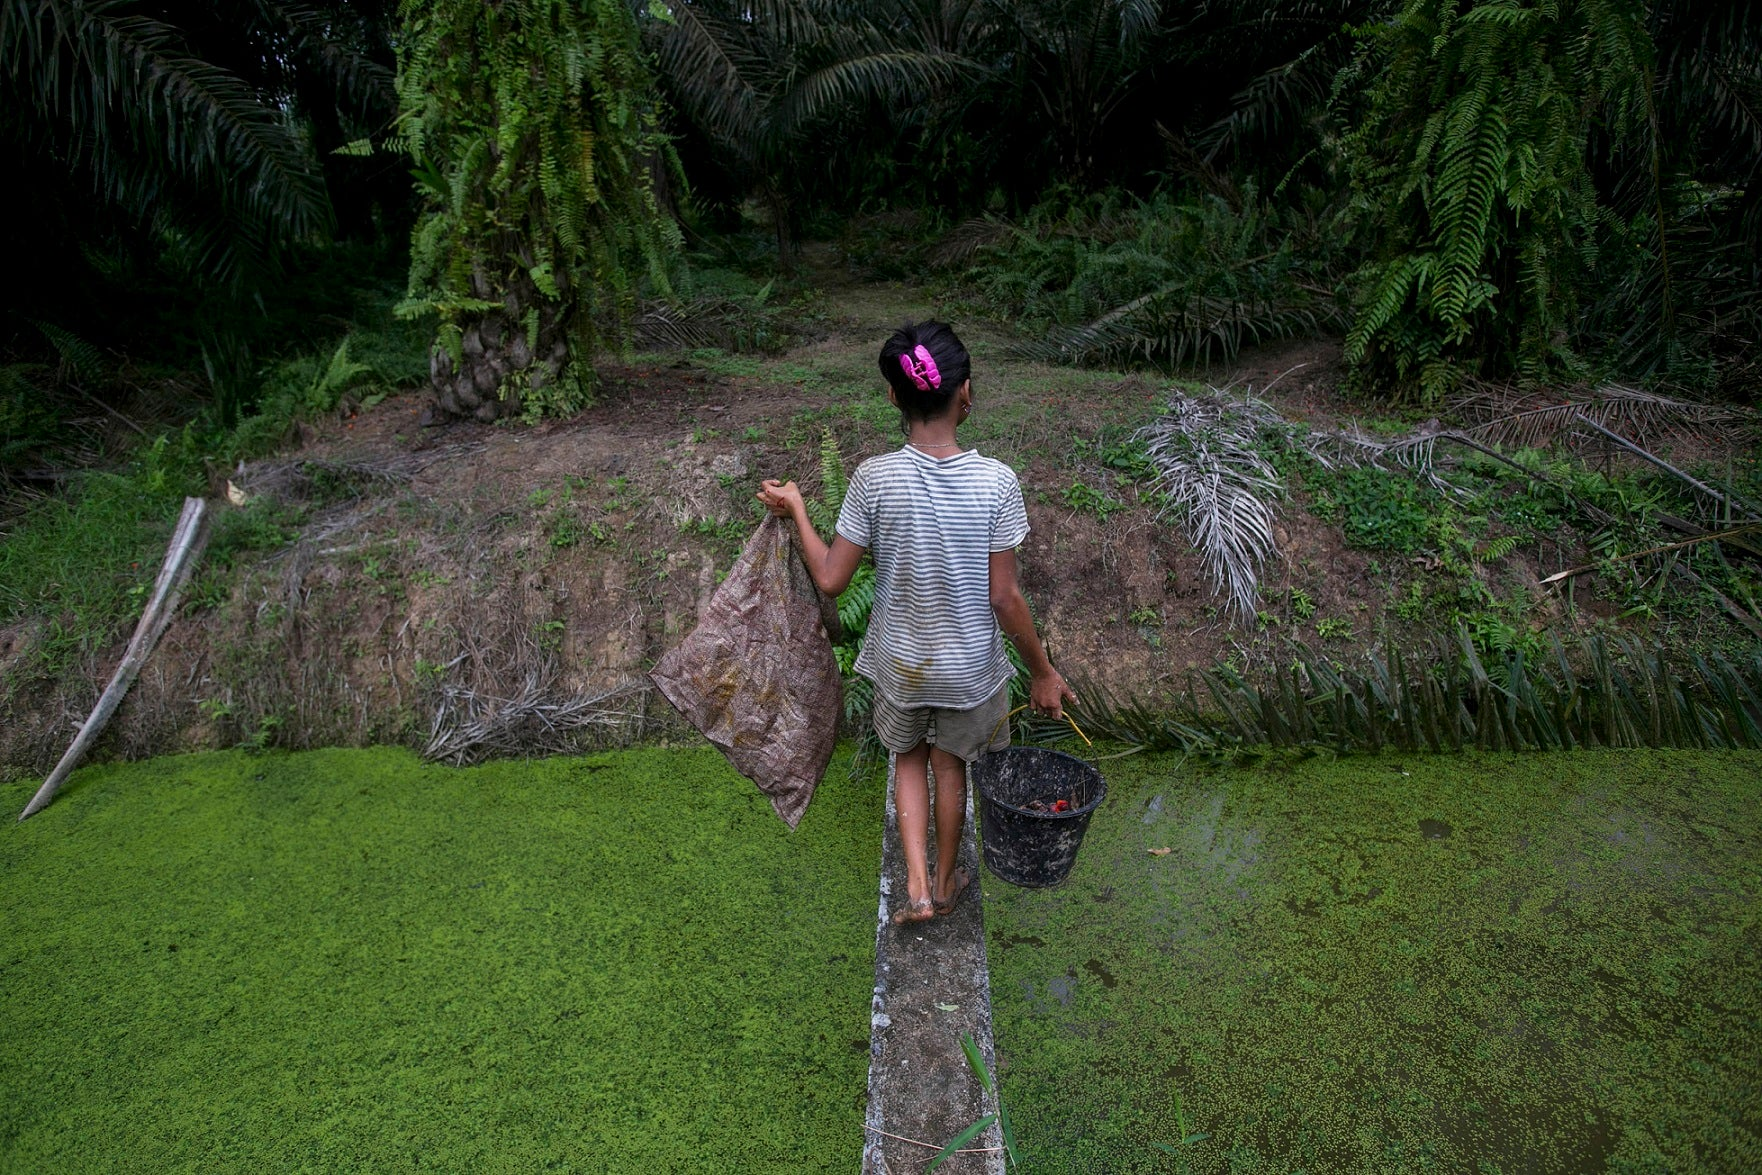 Indonesia: Expanding Palm Oil Operations Bring Harm